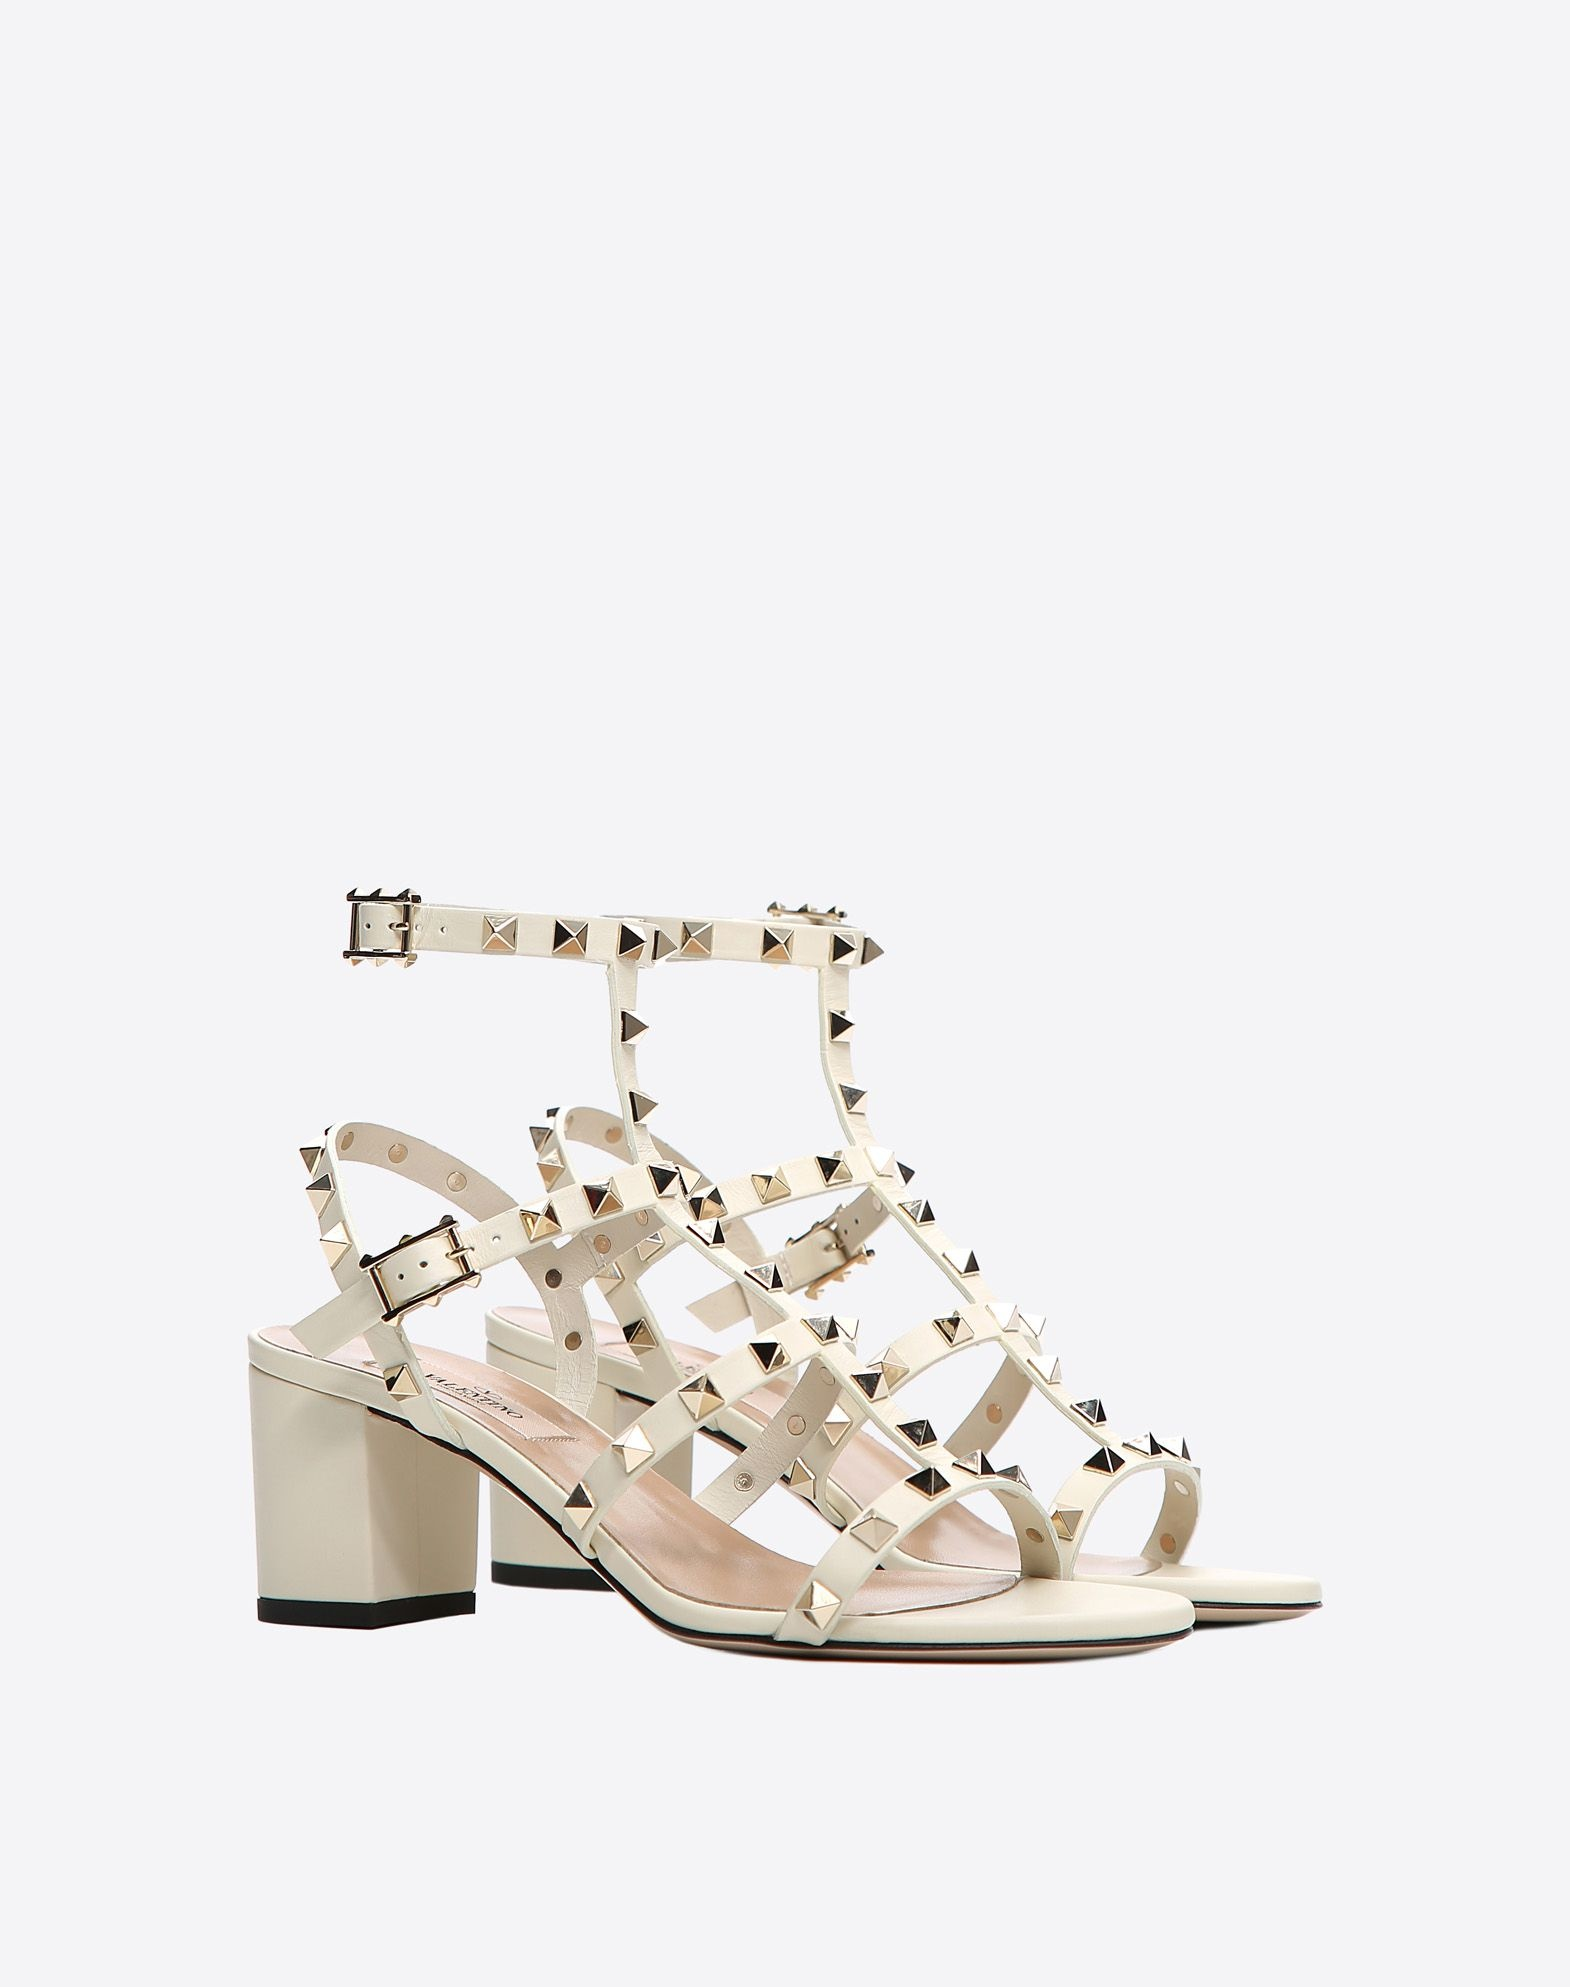 9589c34d39a Block heels have been taking over the fashion scene for quite a while now  as they are incredibly comfortable and render great body support and  stability.